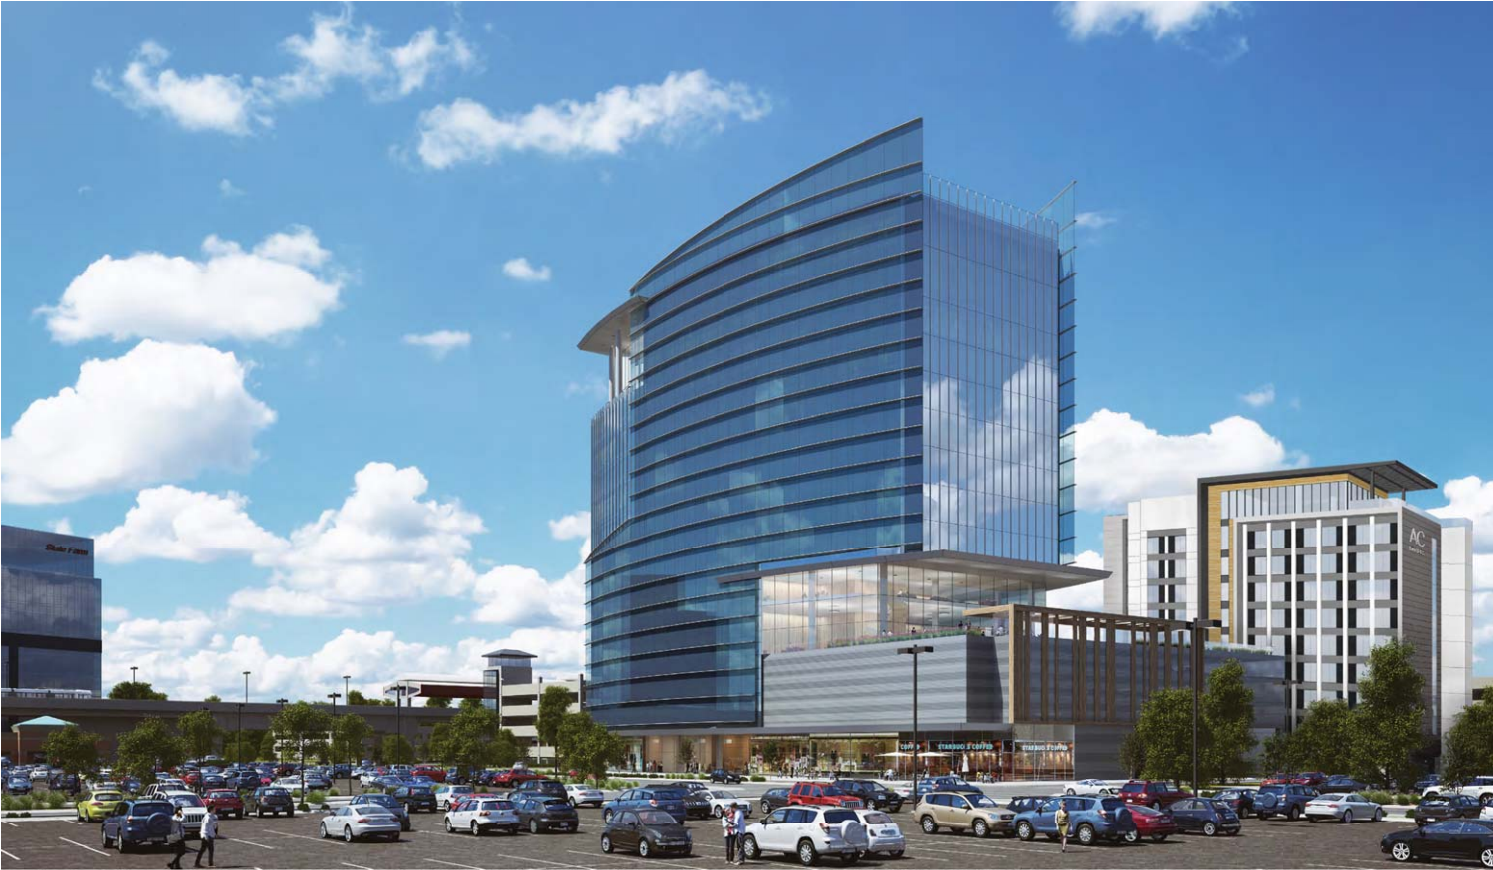 A curving glass office tower, next to a plain-looking hotel.